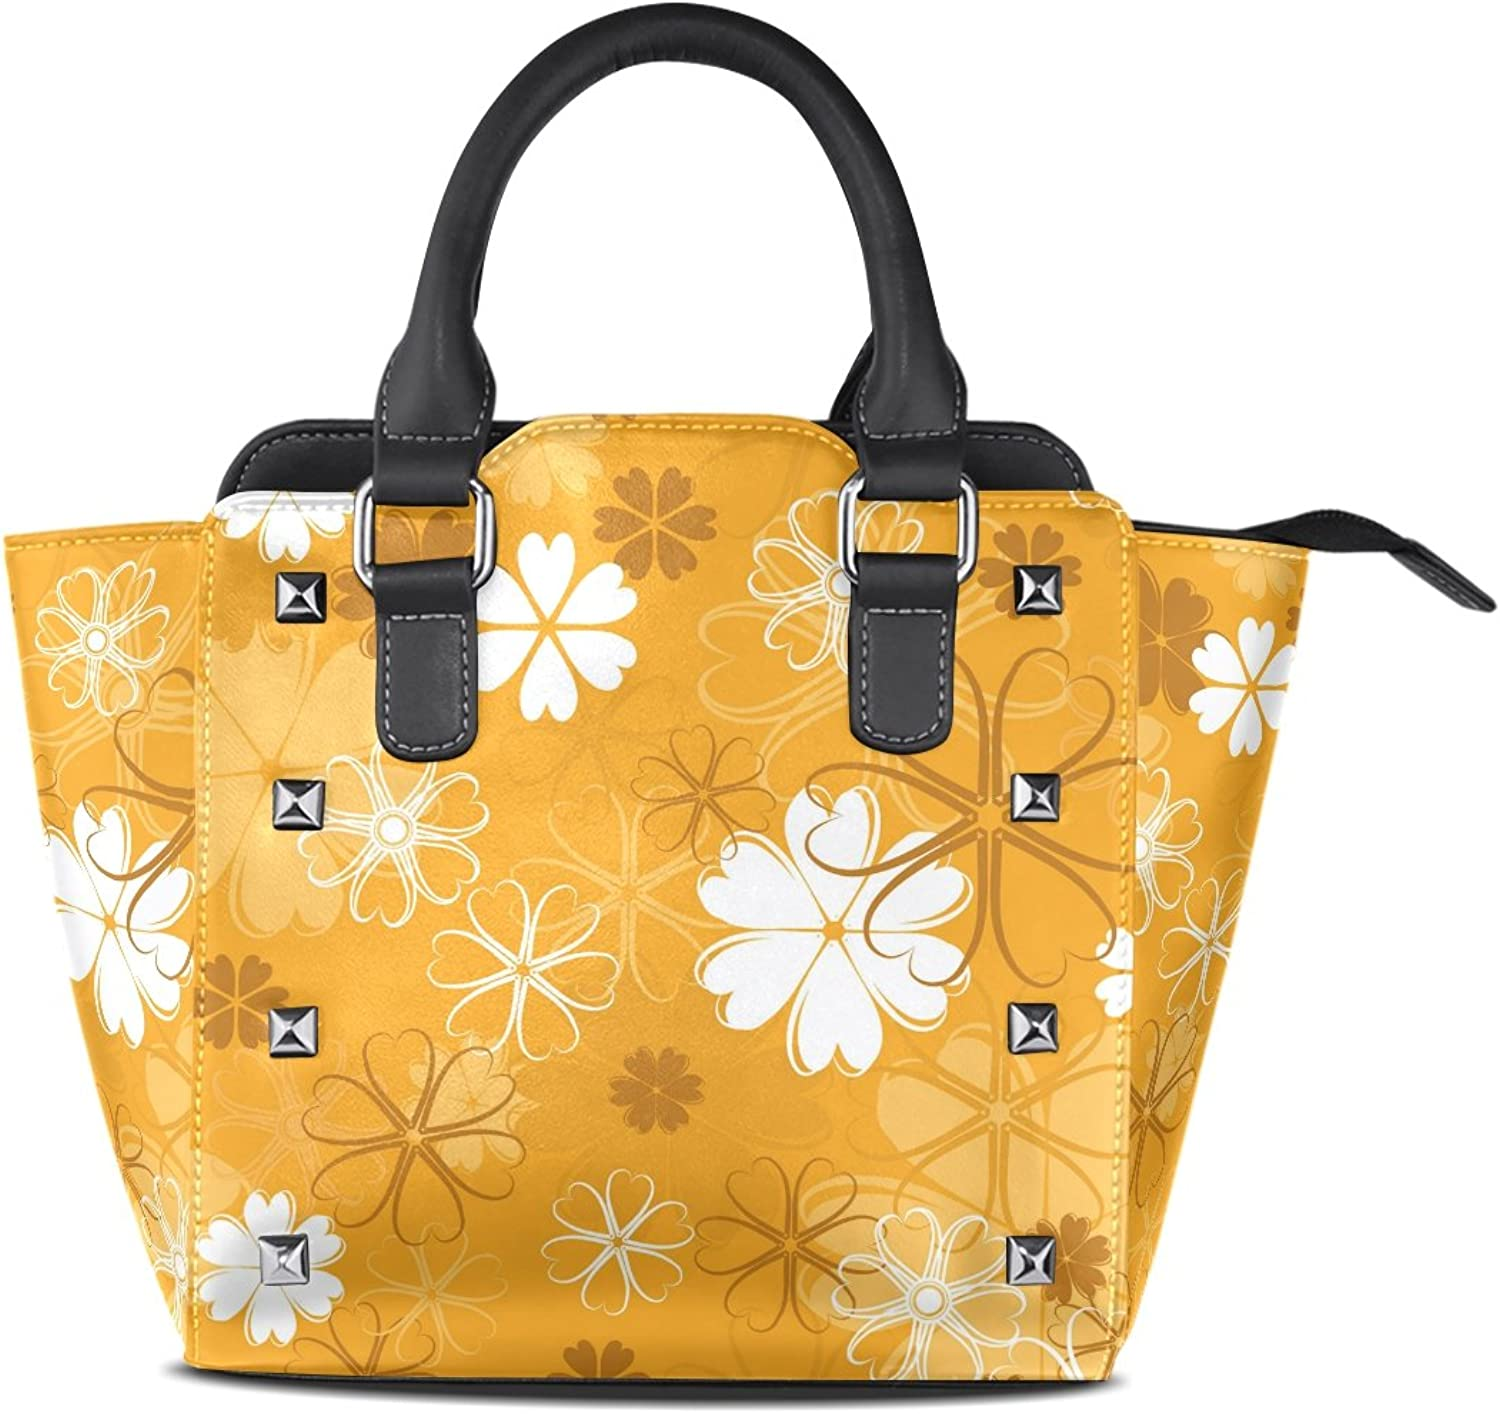 Sunlome Flower Yellow Print Women's Leather Tote Shoulder Bags Handbags